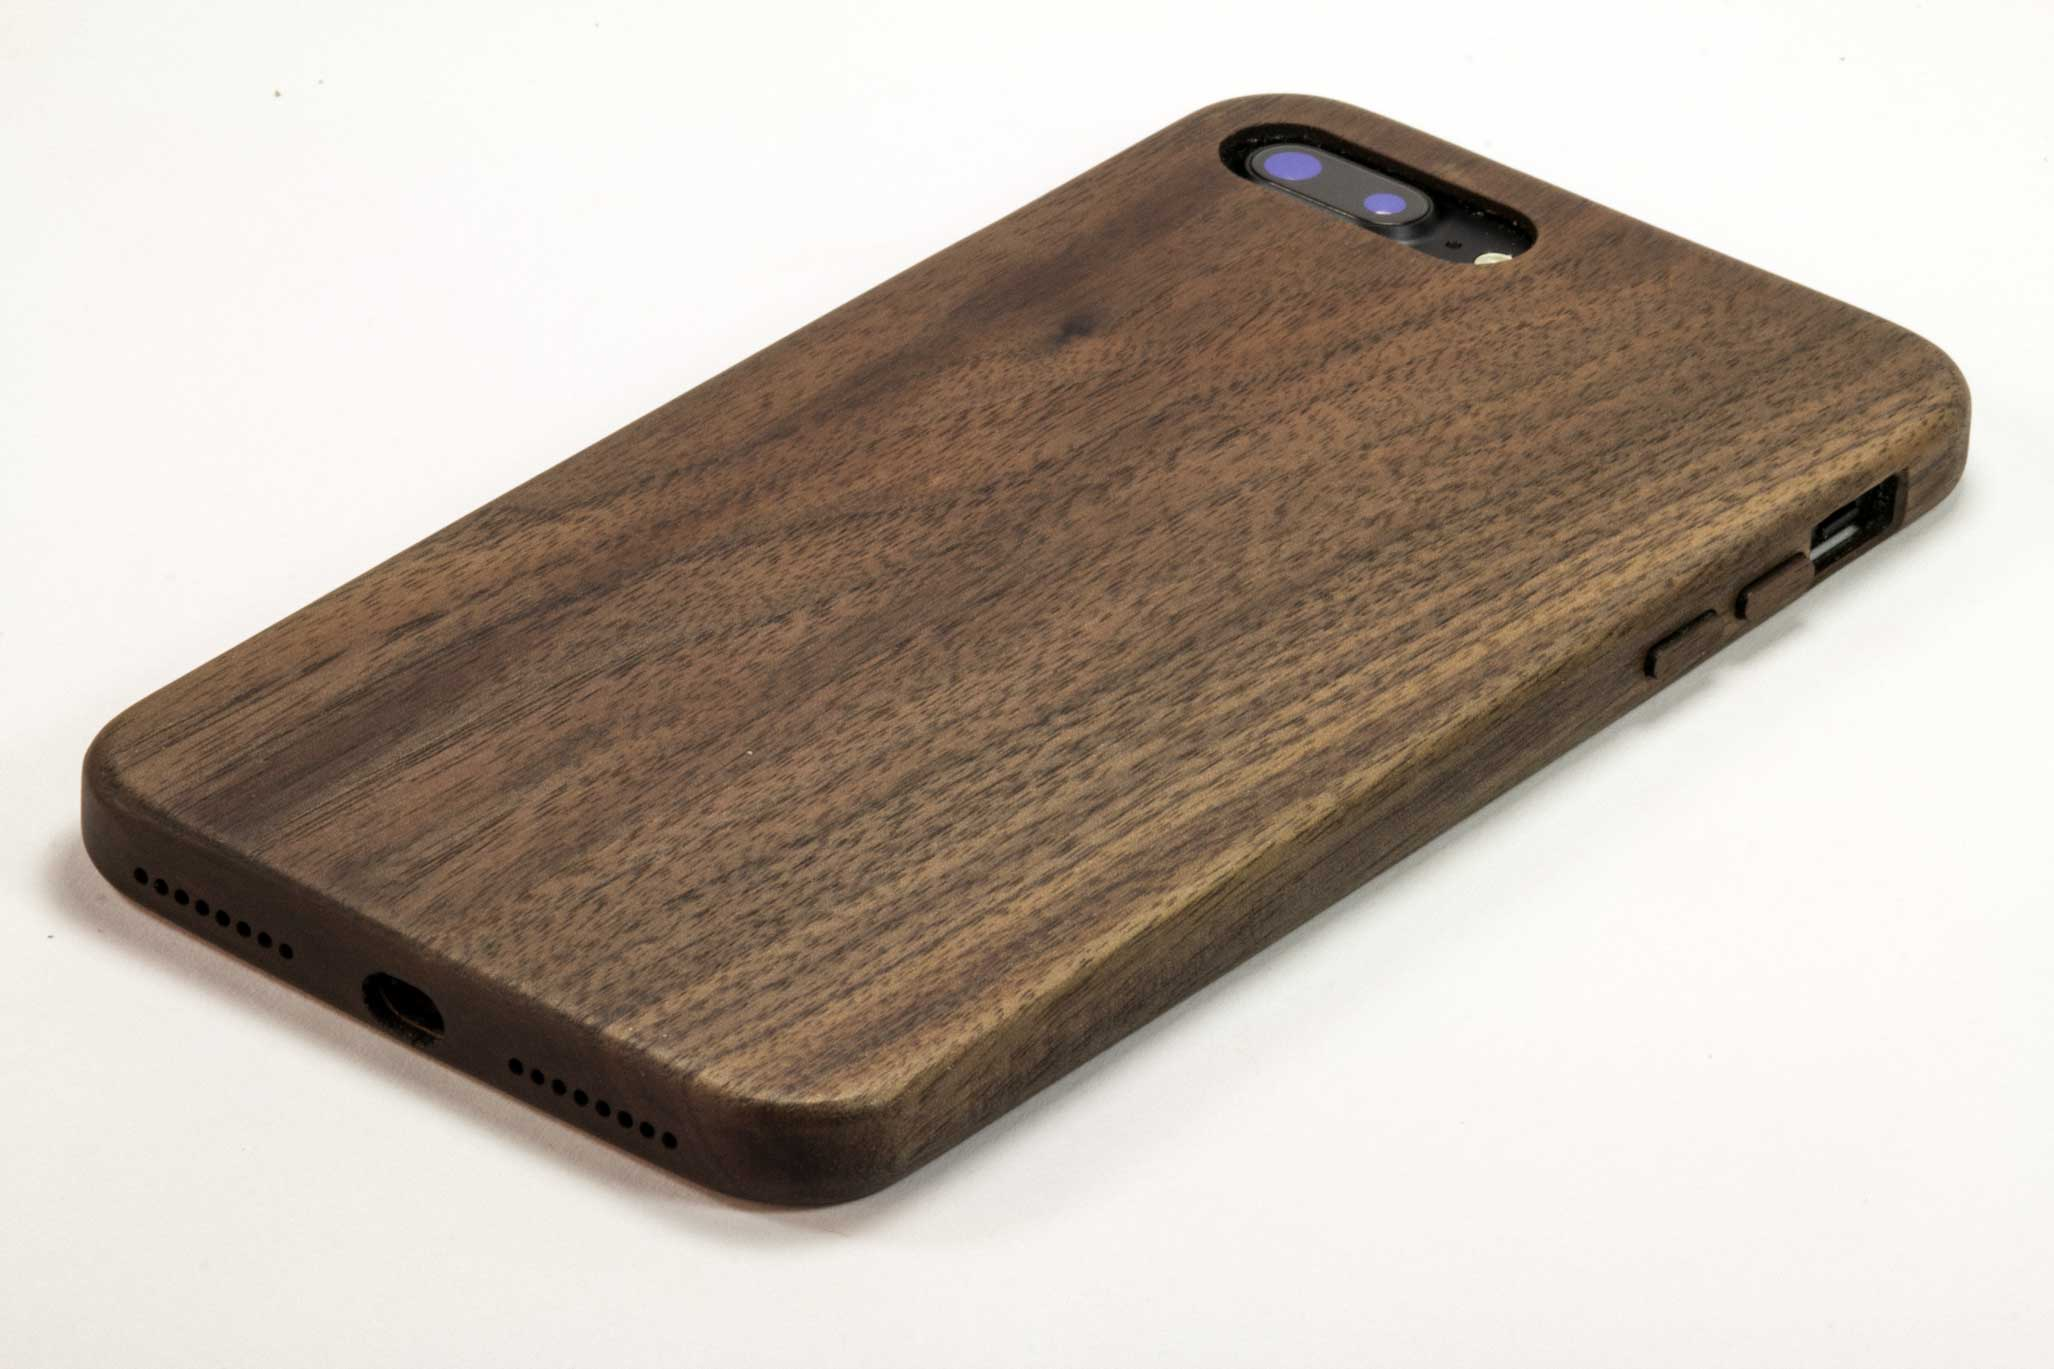 wood iphone 7 plus cases - natural wood - handmade